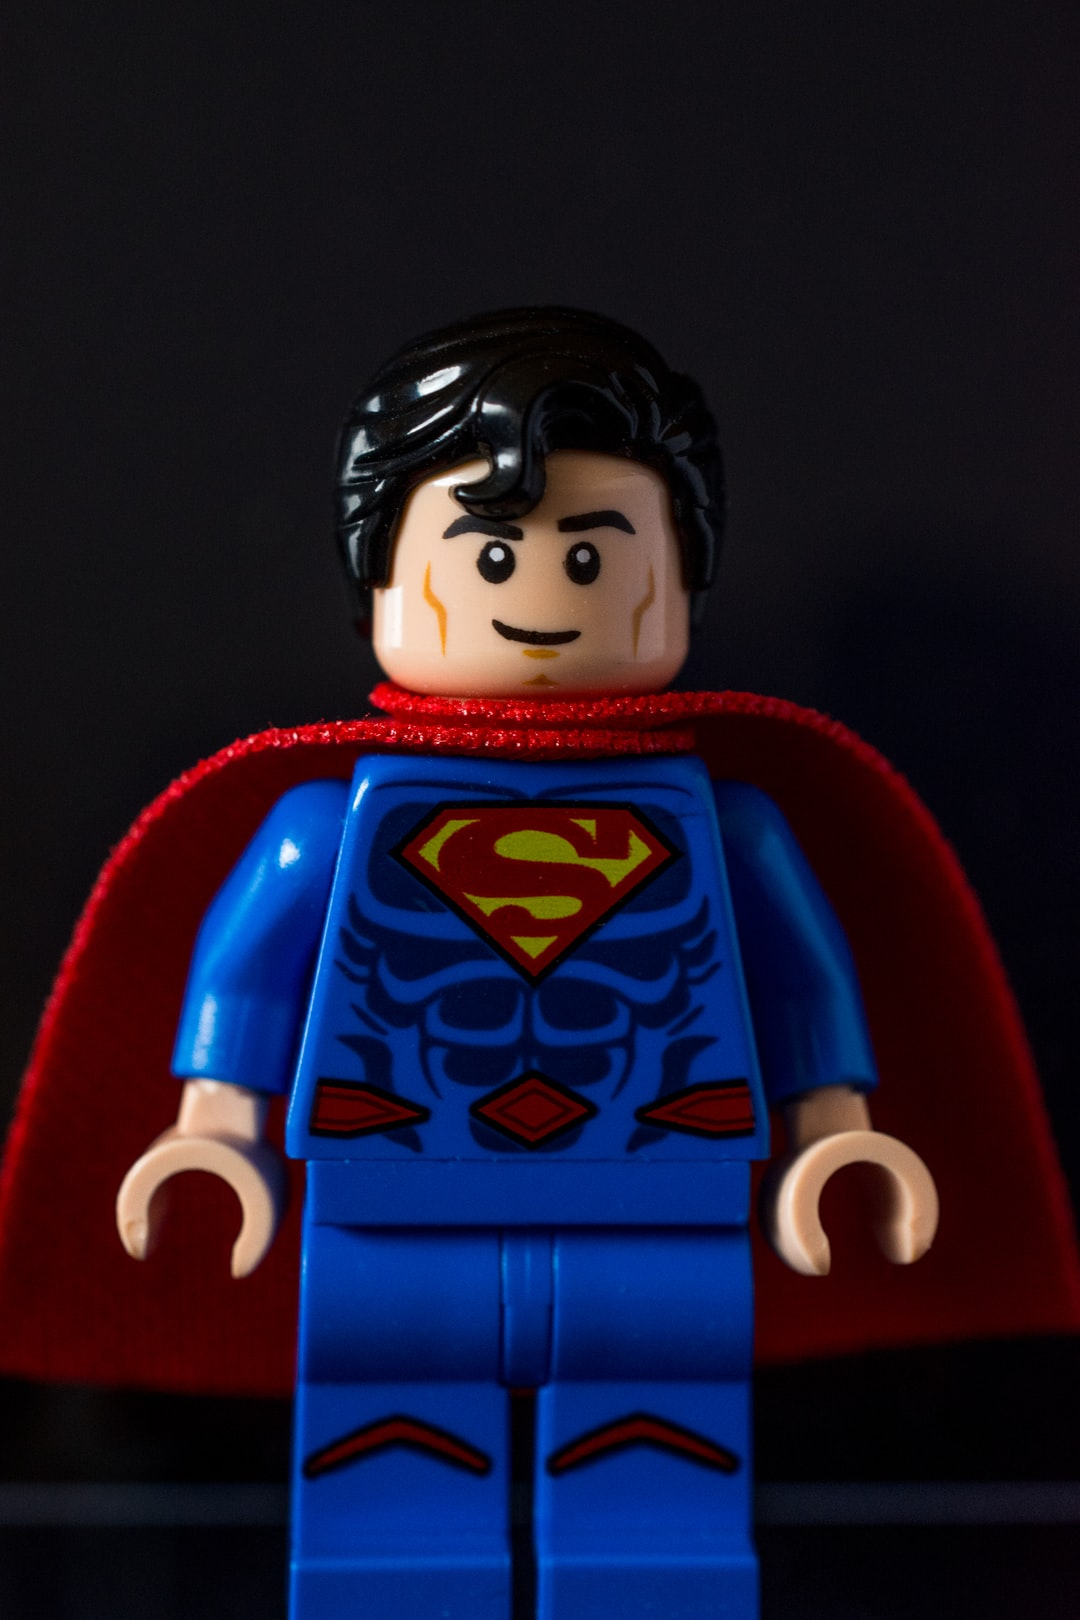 Because I love Lego and I have a lot of these minifigures!